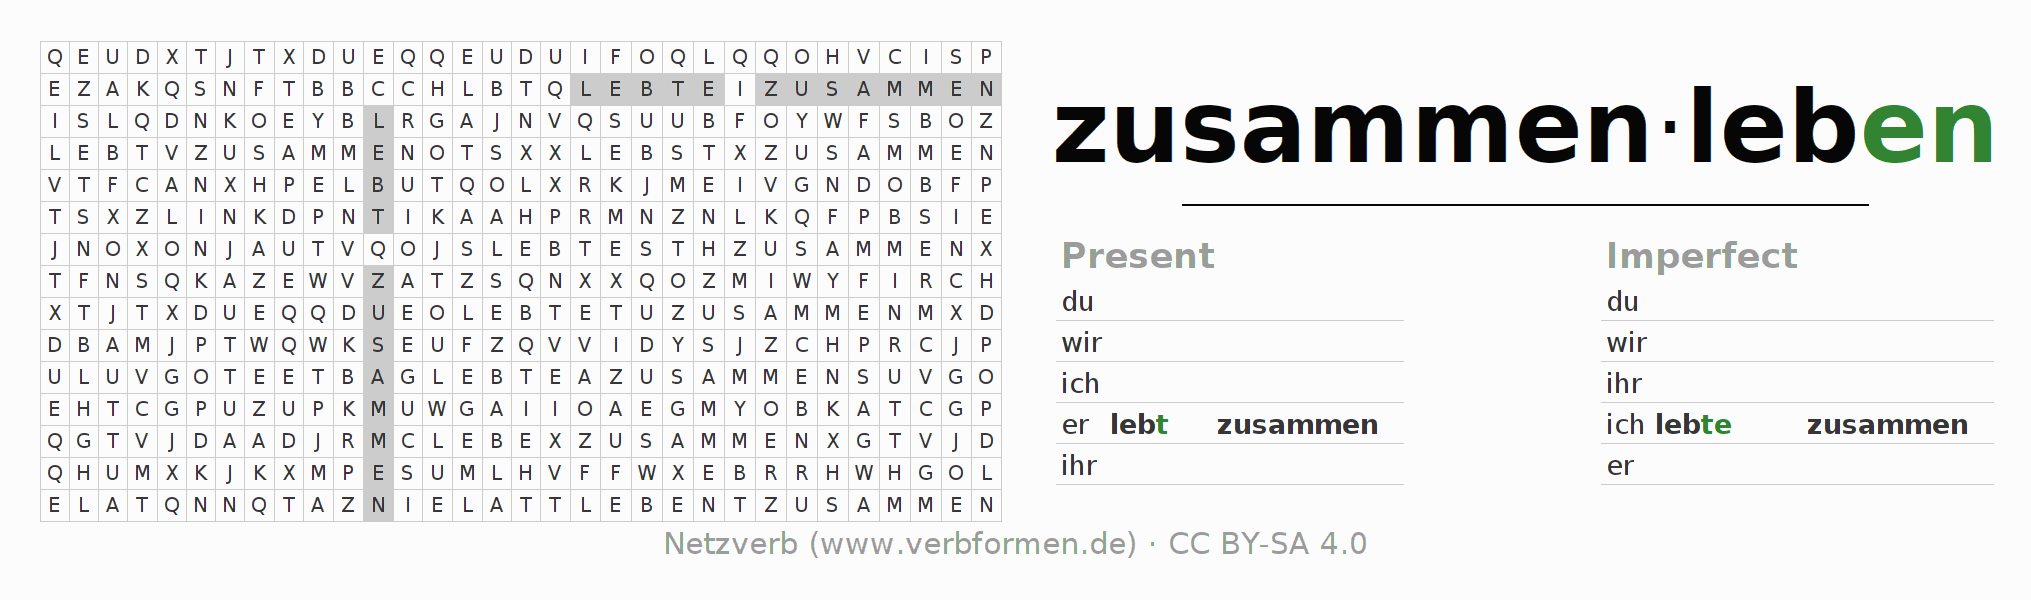 Word search puzzle for the conjugation of the verb zusammenleben